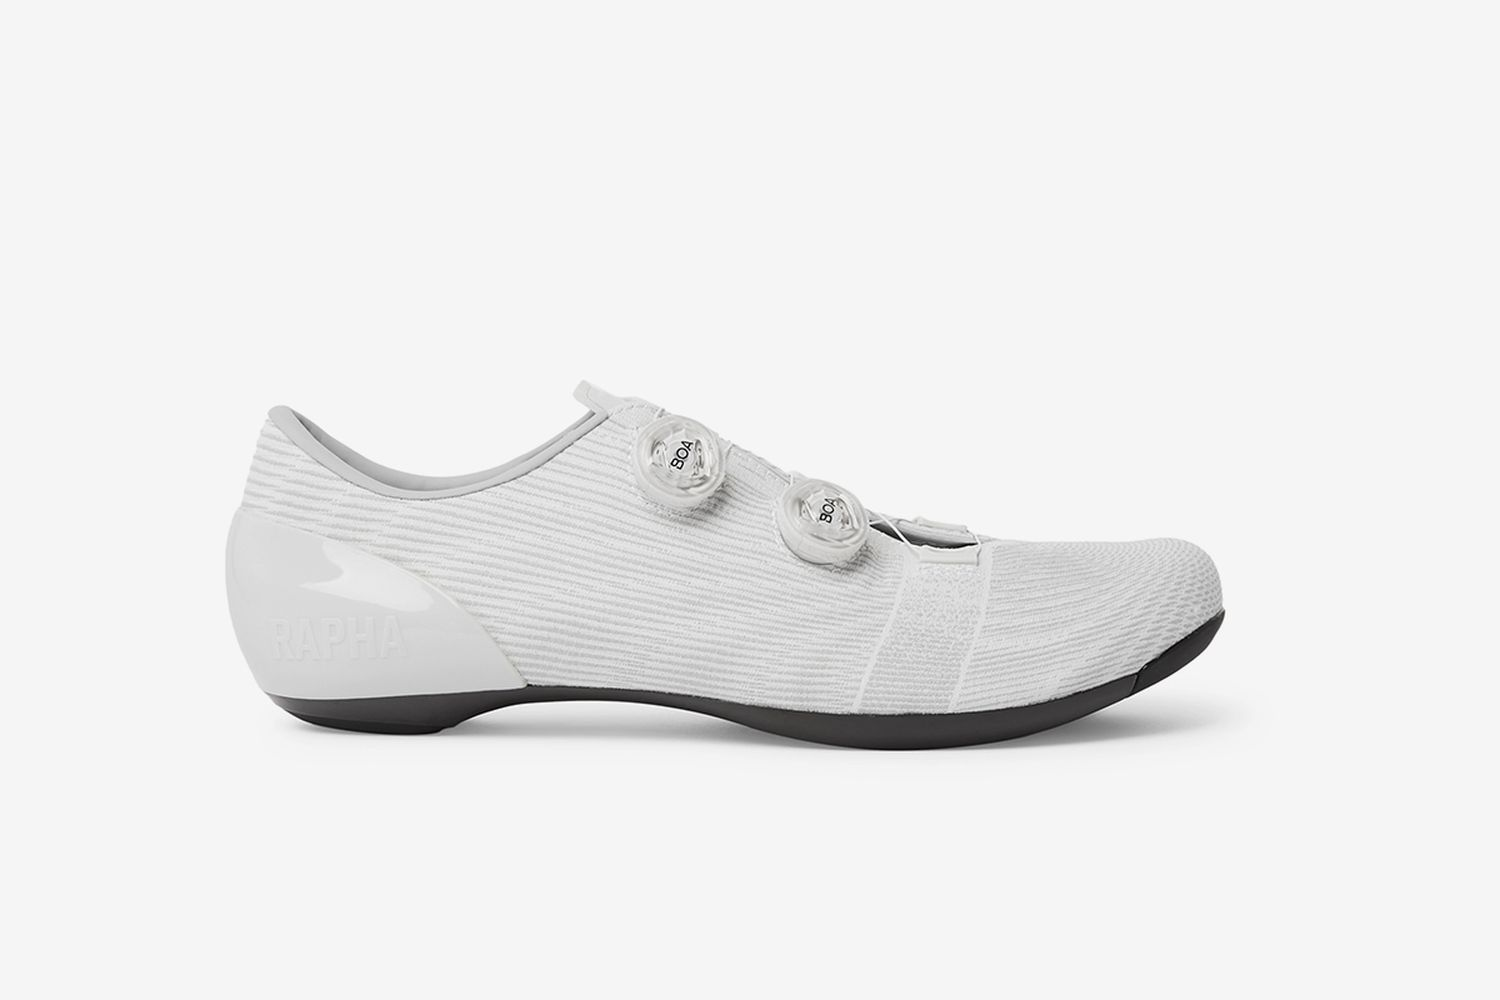 Pro Team Powerweave Cycling Shoes